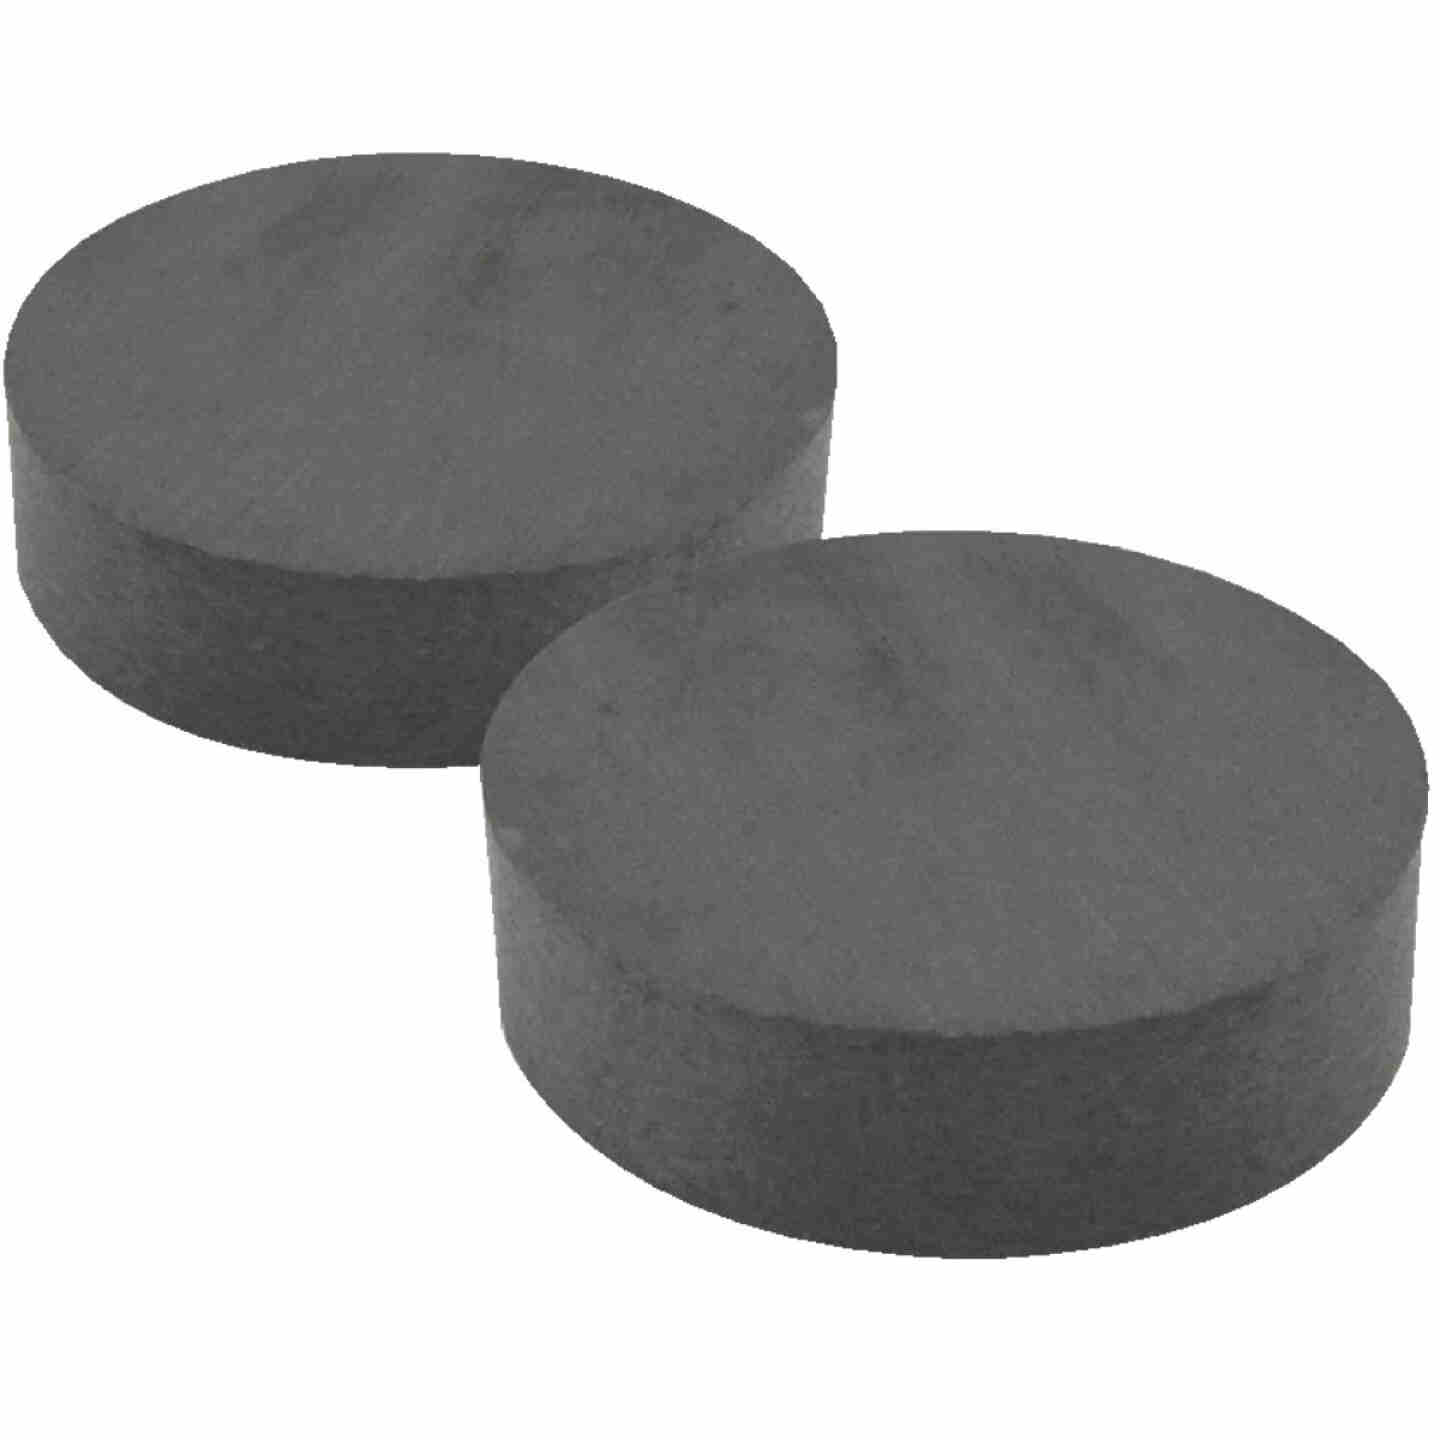 Master Magnetics 3/4 in. Ceramic Magnetic Discs (8-Pack) Image 1